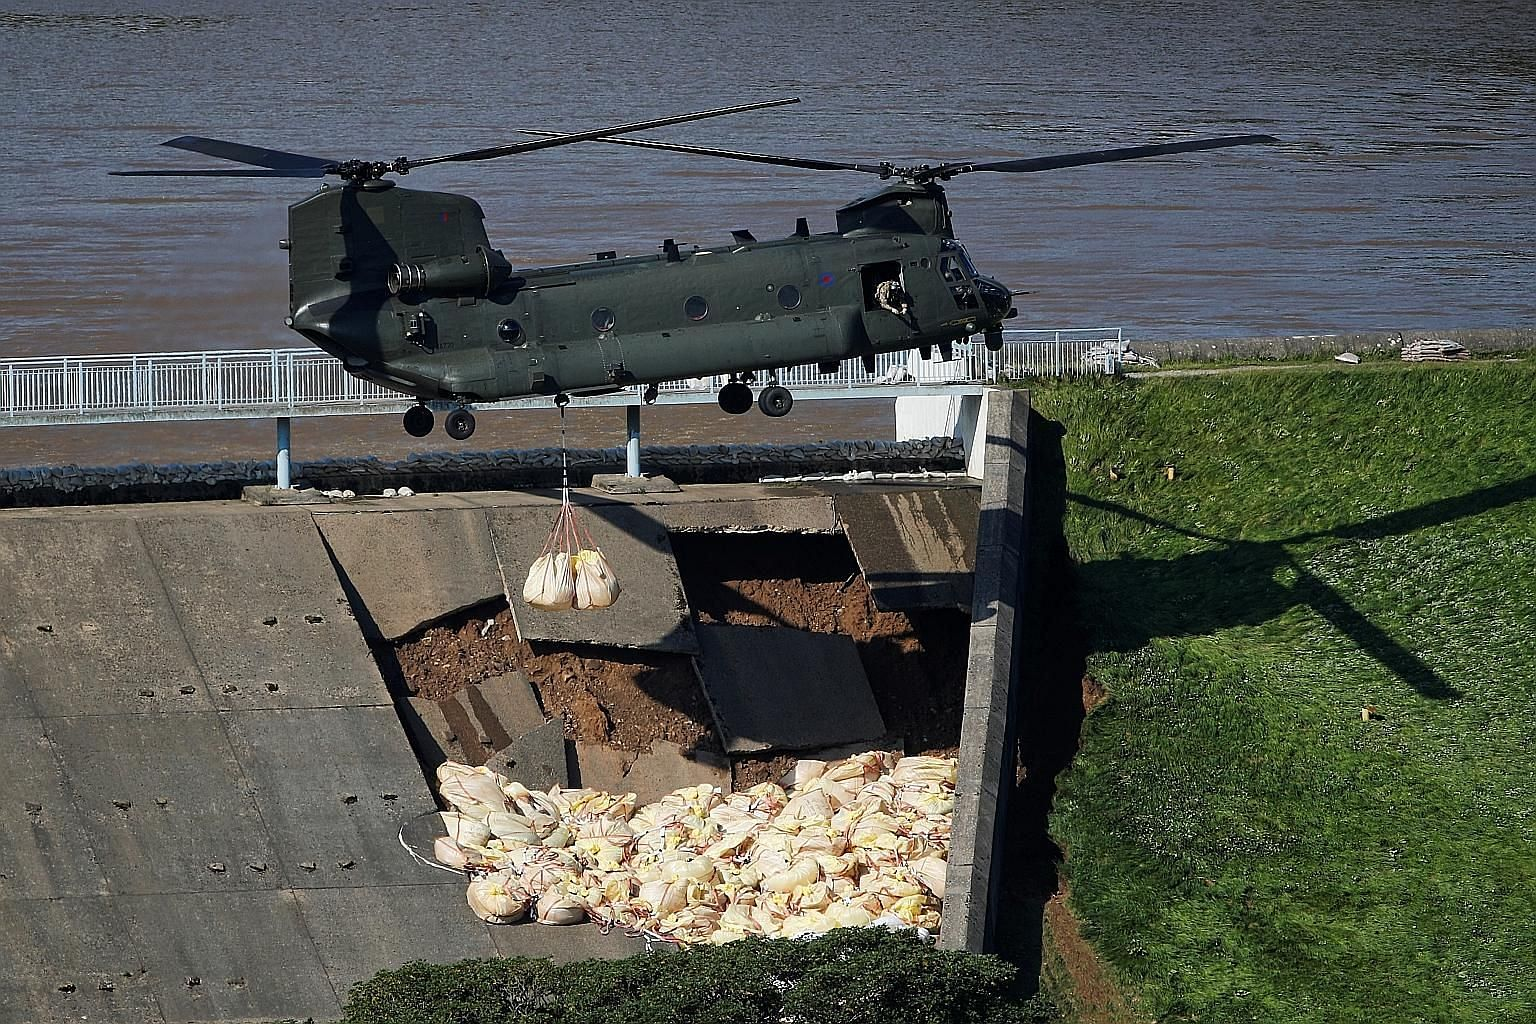 A Chinook helicopter dropping sandbags on top of the dam in Whaley Bridge in England yesterday. Officials said the dam, holding back 300 million gallons of water in the reservoir above the town, was in danger of failing.